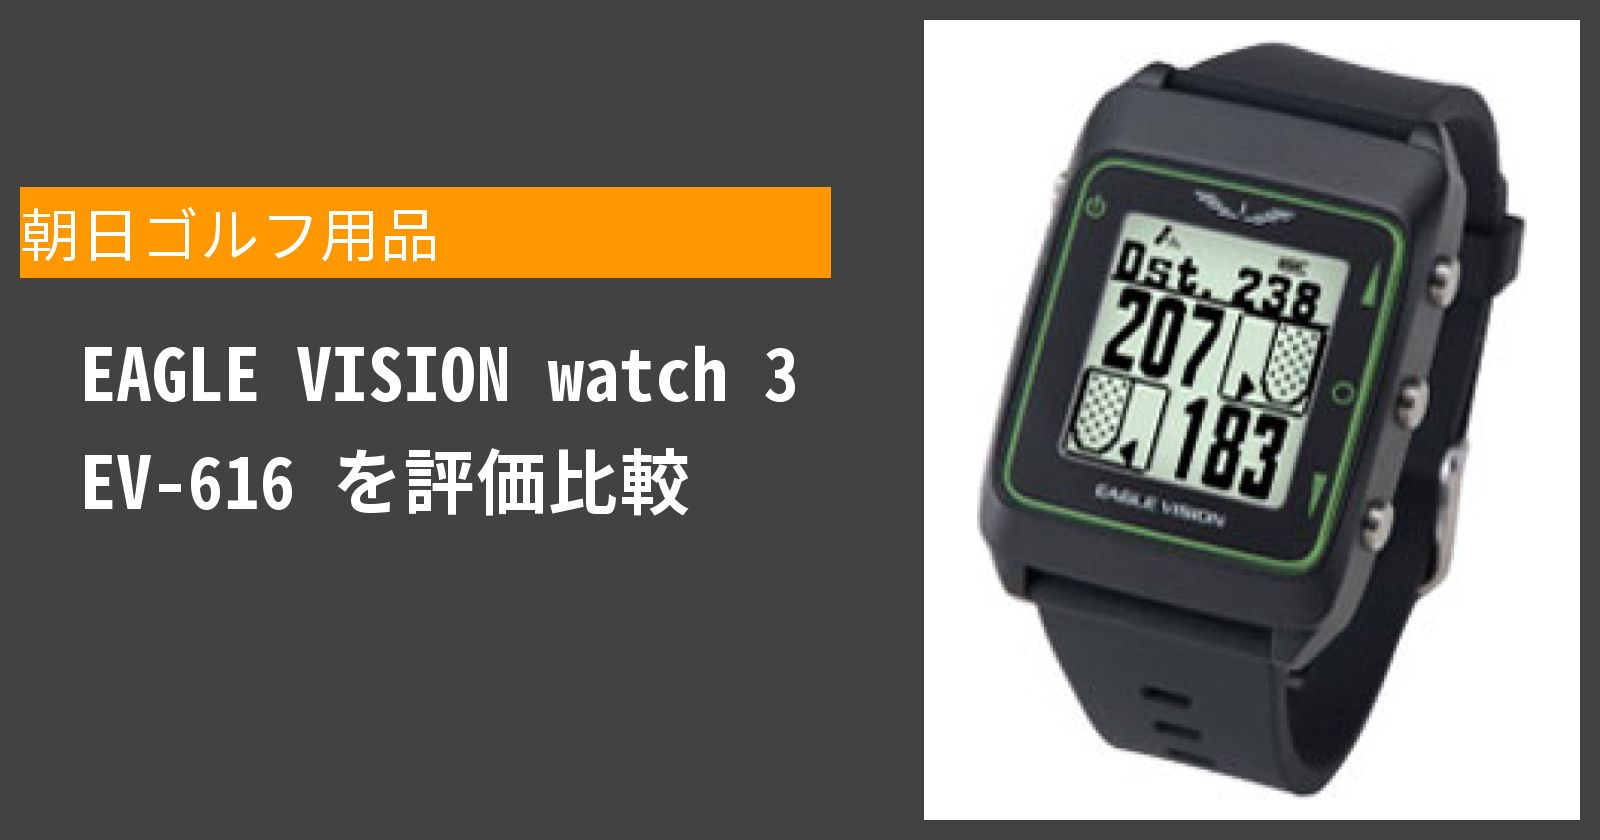 EAGLE VISION watch 3 EV-616を徹底評価